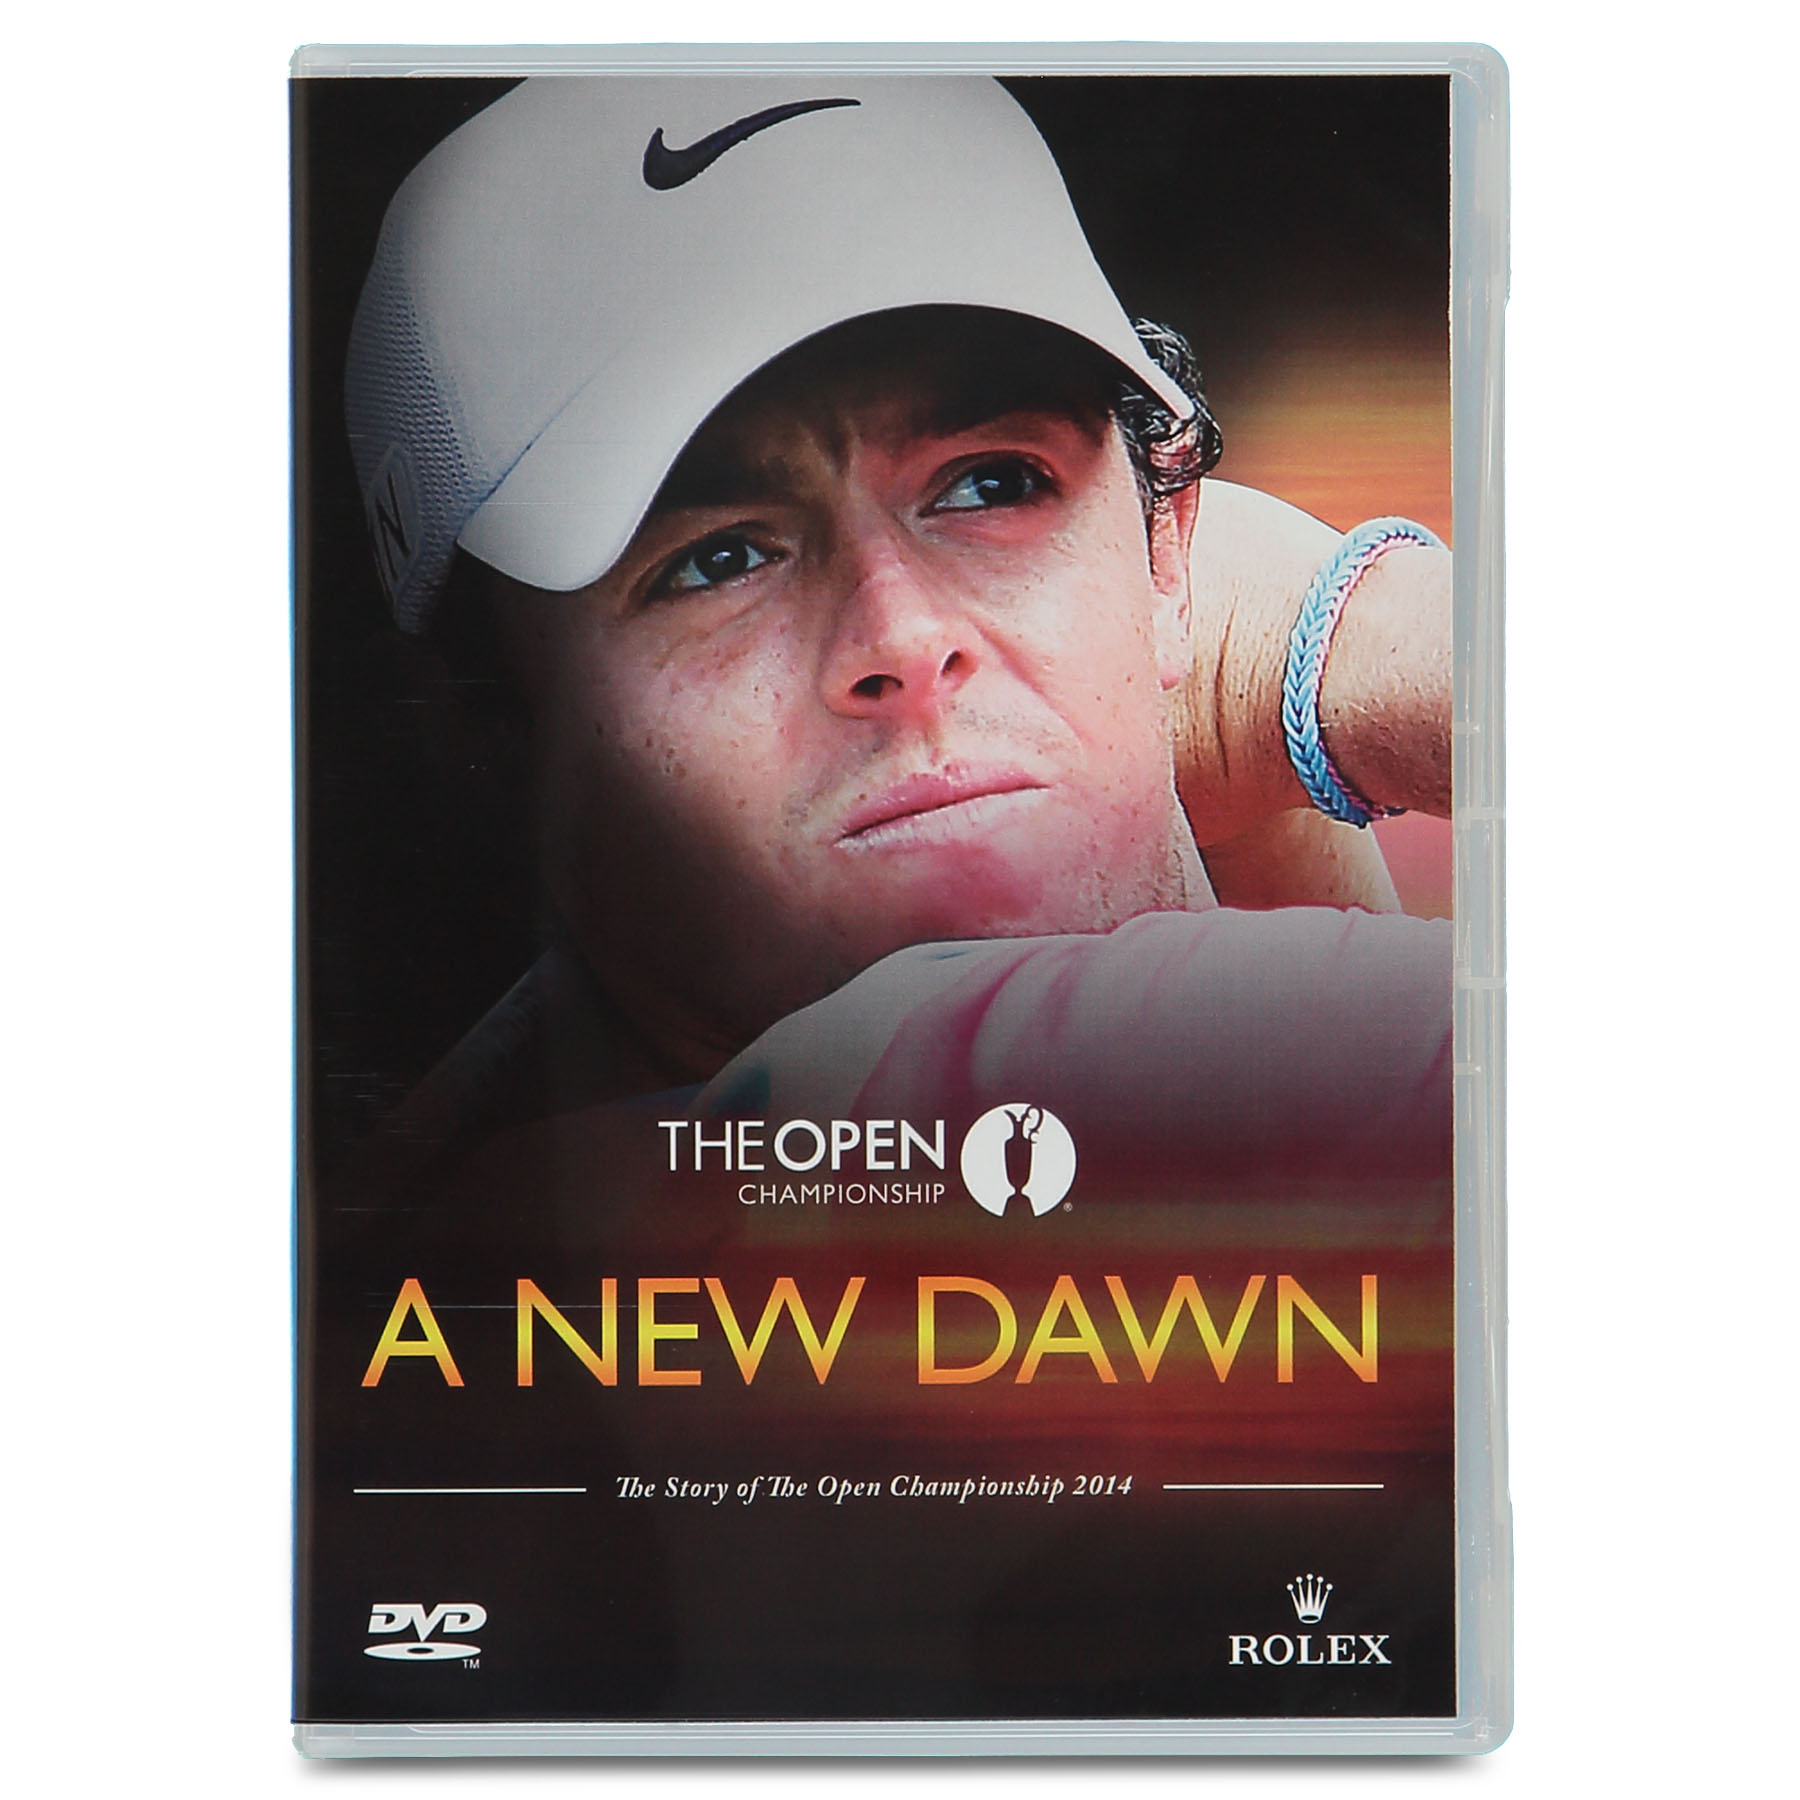 The Open Championship Royal Liverpool 2014 review DVD